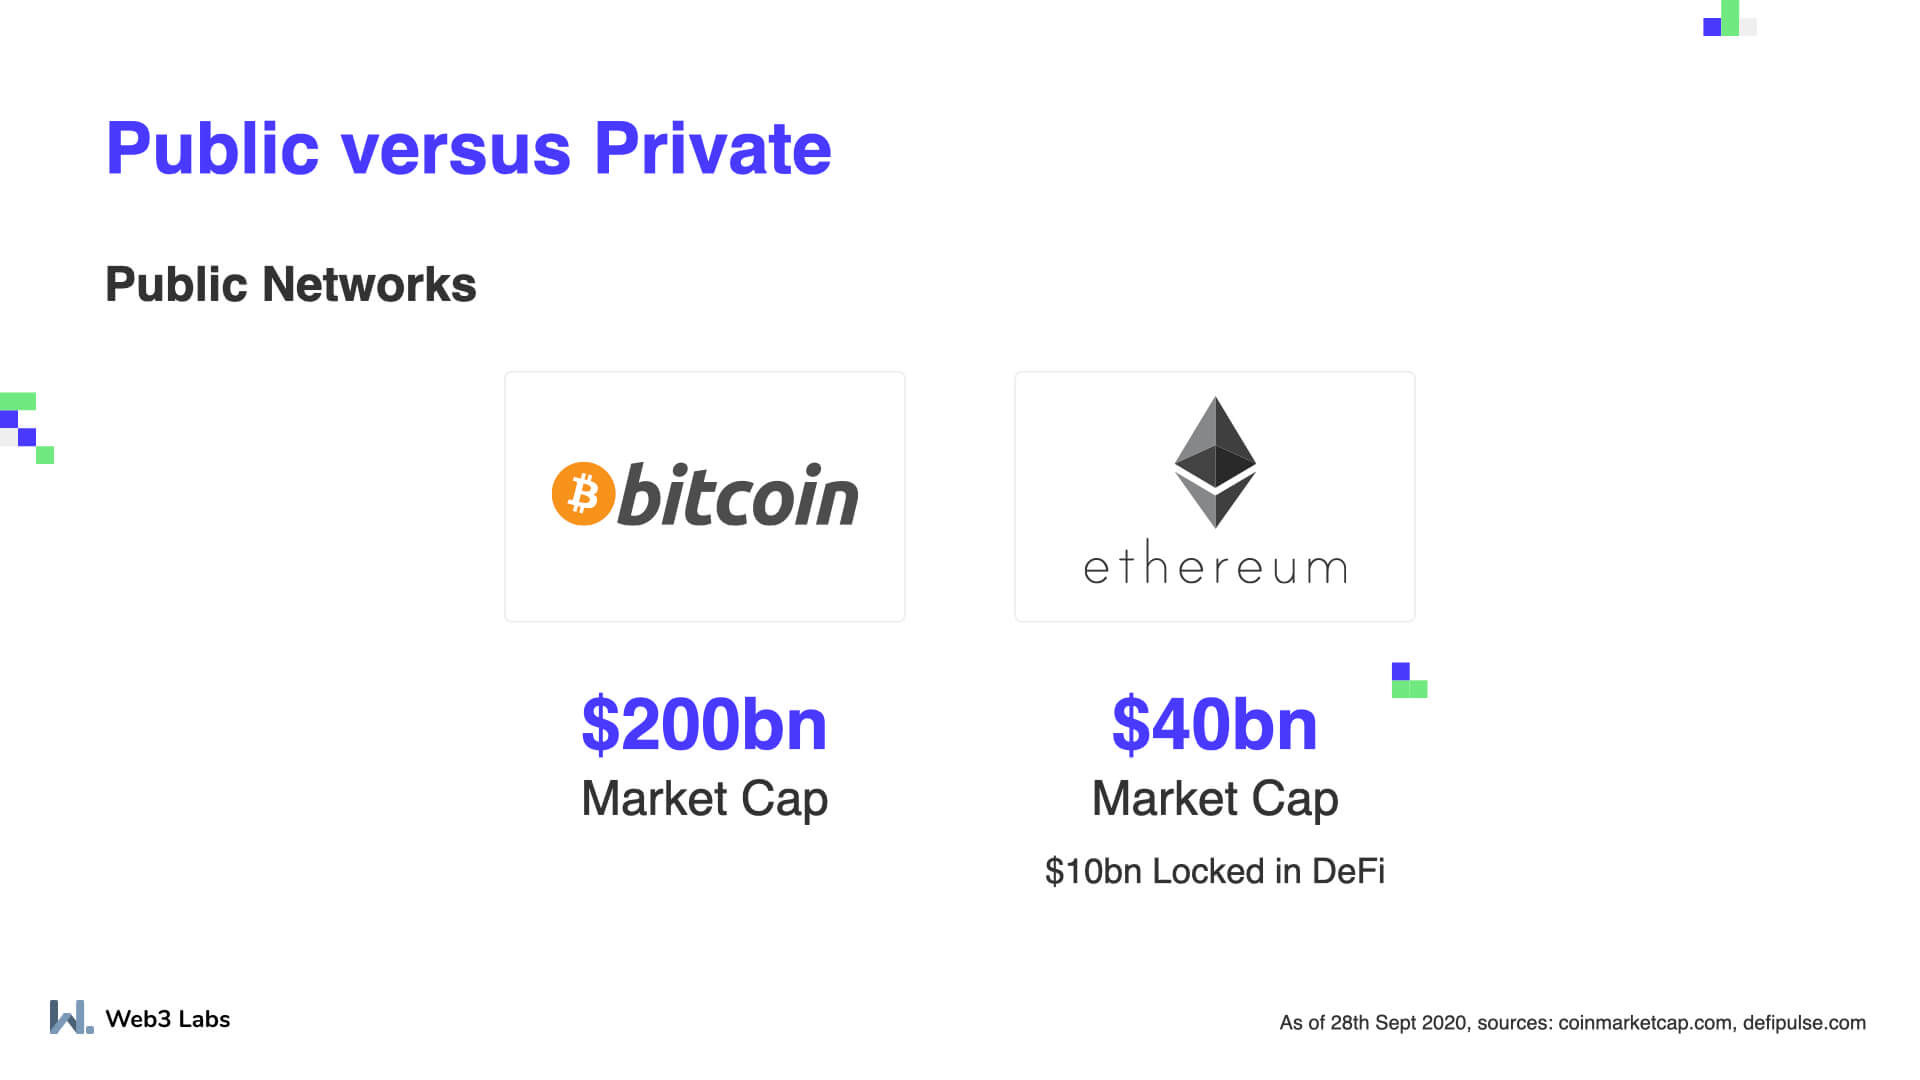 Bitcoin and Ethereum Blockchain Networks